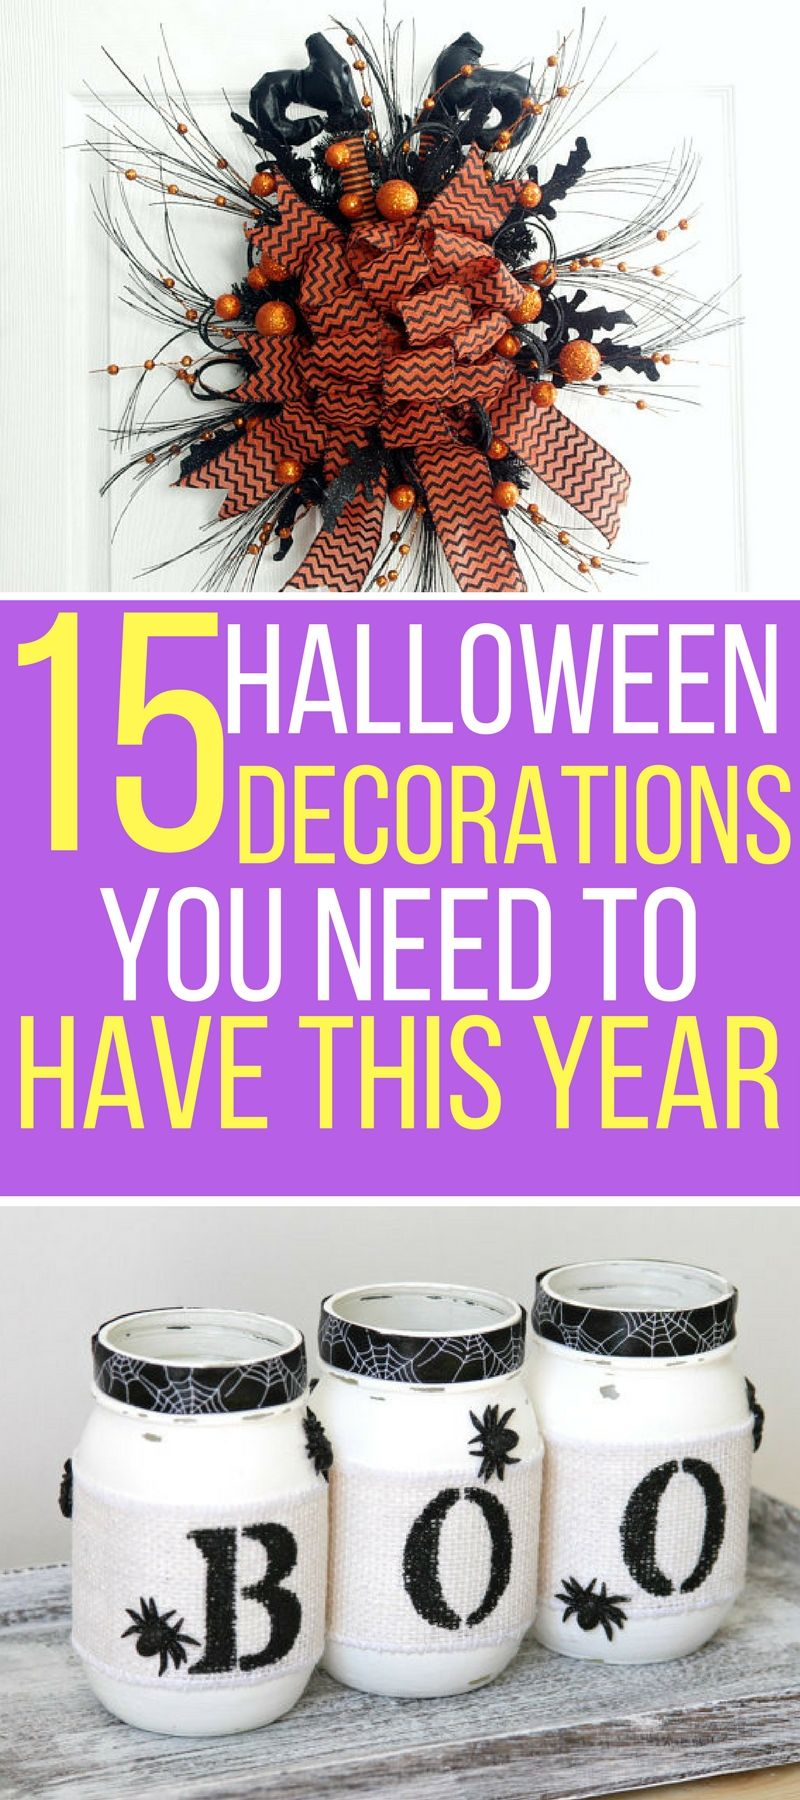 13 amazing halloween decorations you must try out this year - Cheapest Halloween Decorations